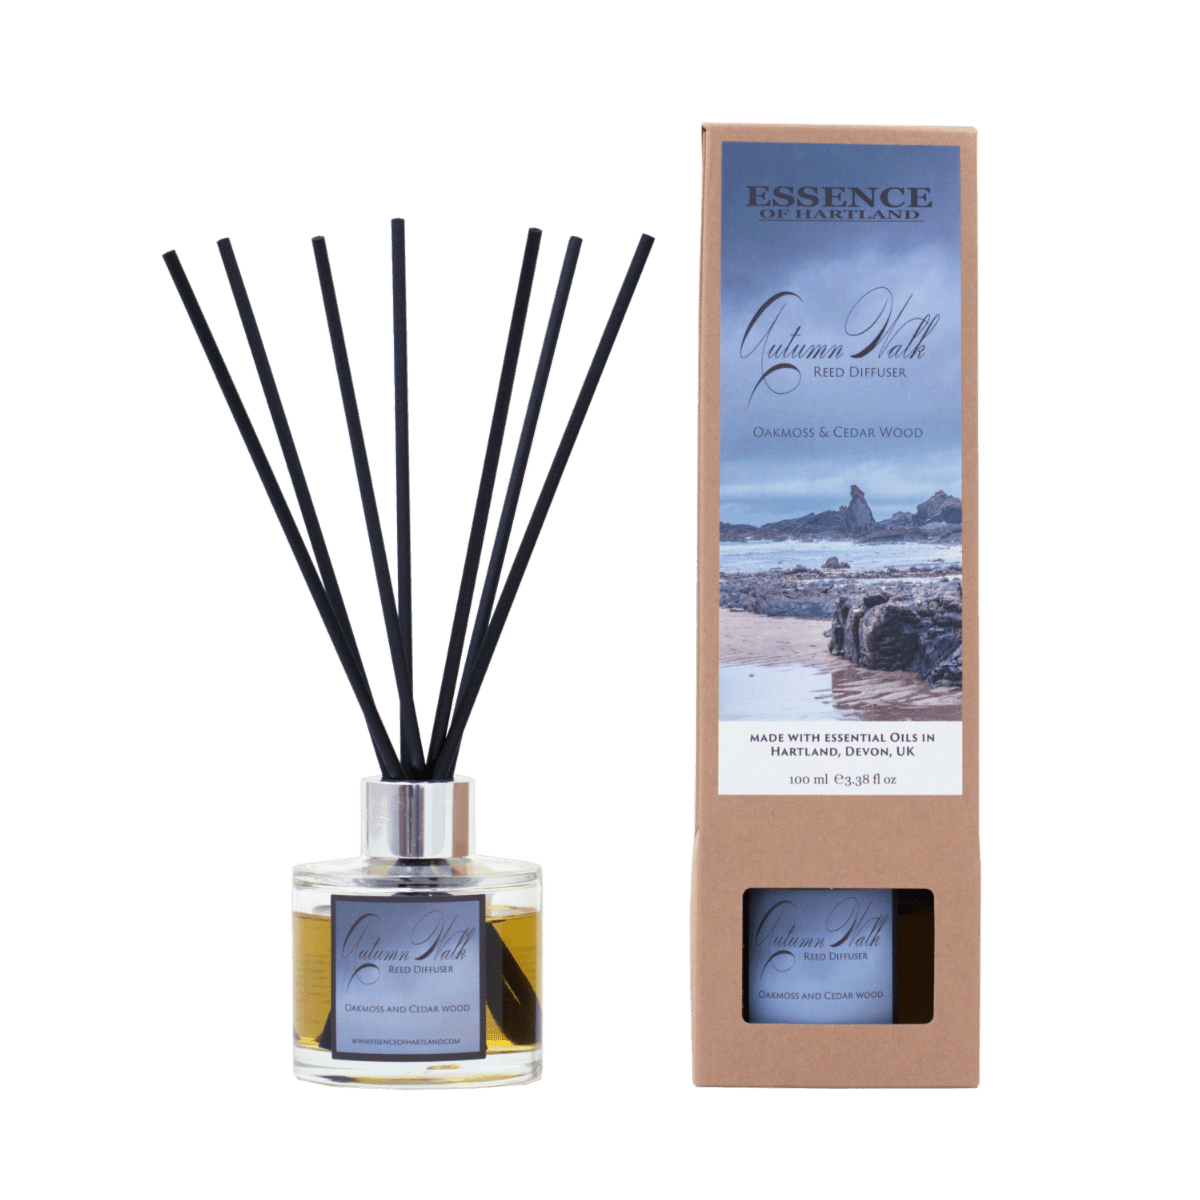 A glass diffuser bottle of Autumn Walk with black fibre reeds, in the middle the diffuser box packaging detailing the name of the product and image of Bear Rock and moody Hartland Quay beach scene.